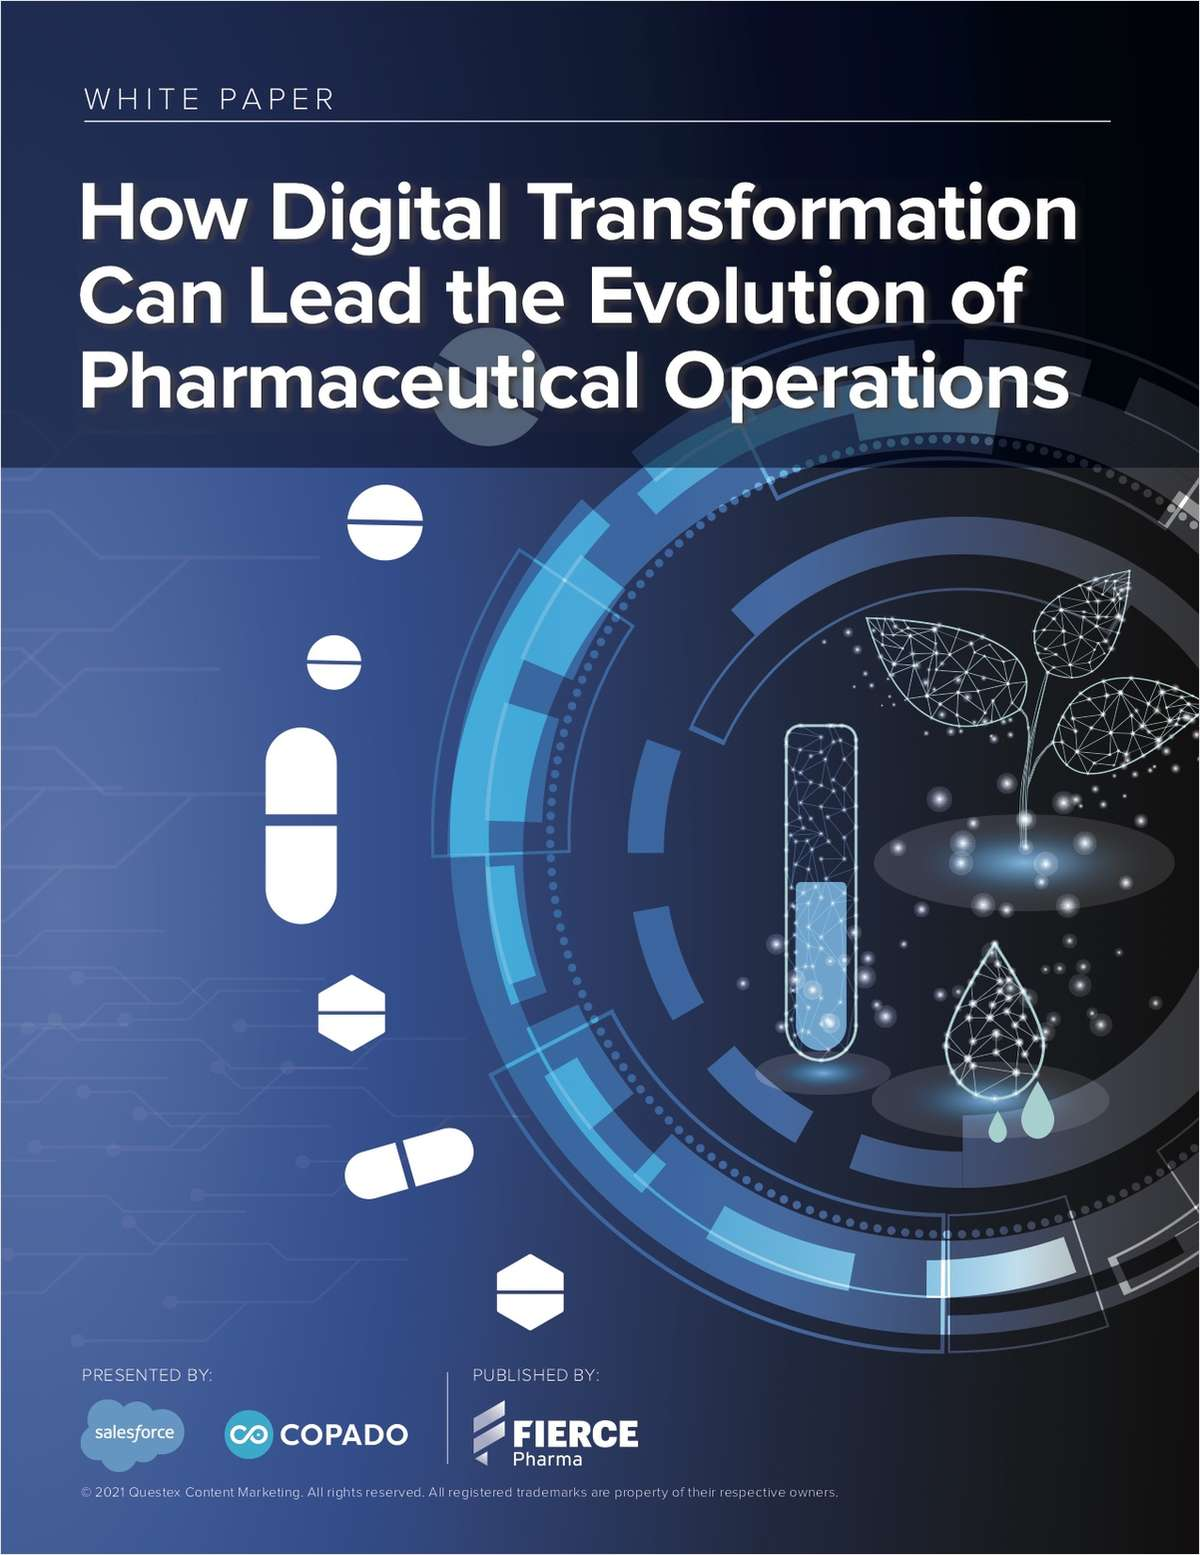 How Digital Transformation Can Lead the Evolution of Pharmaceutical Operations